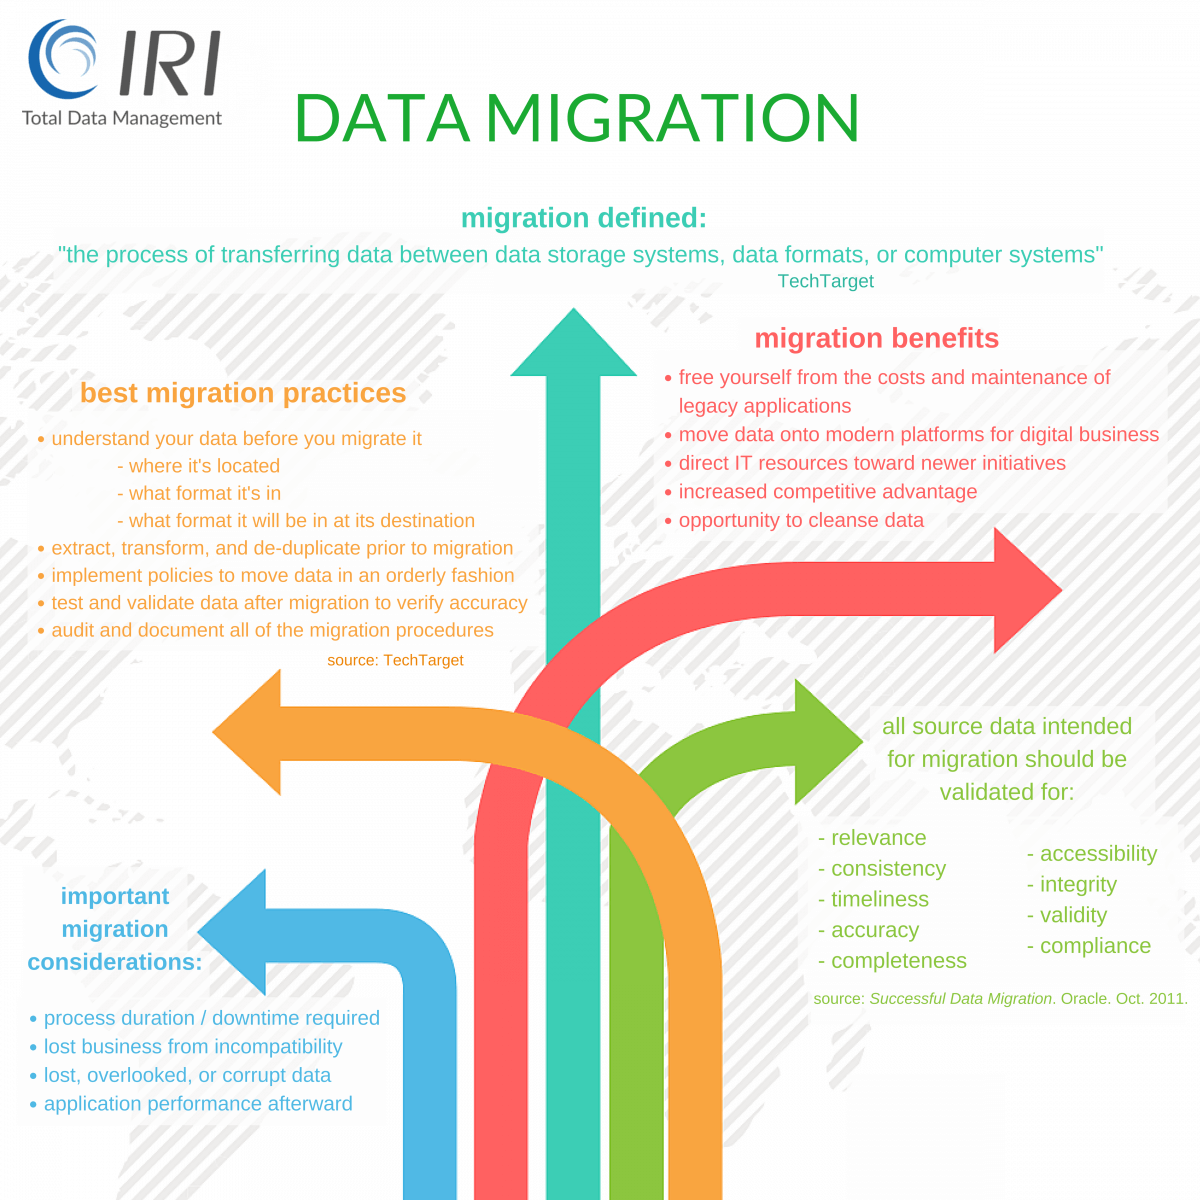 data migration information and benefits